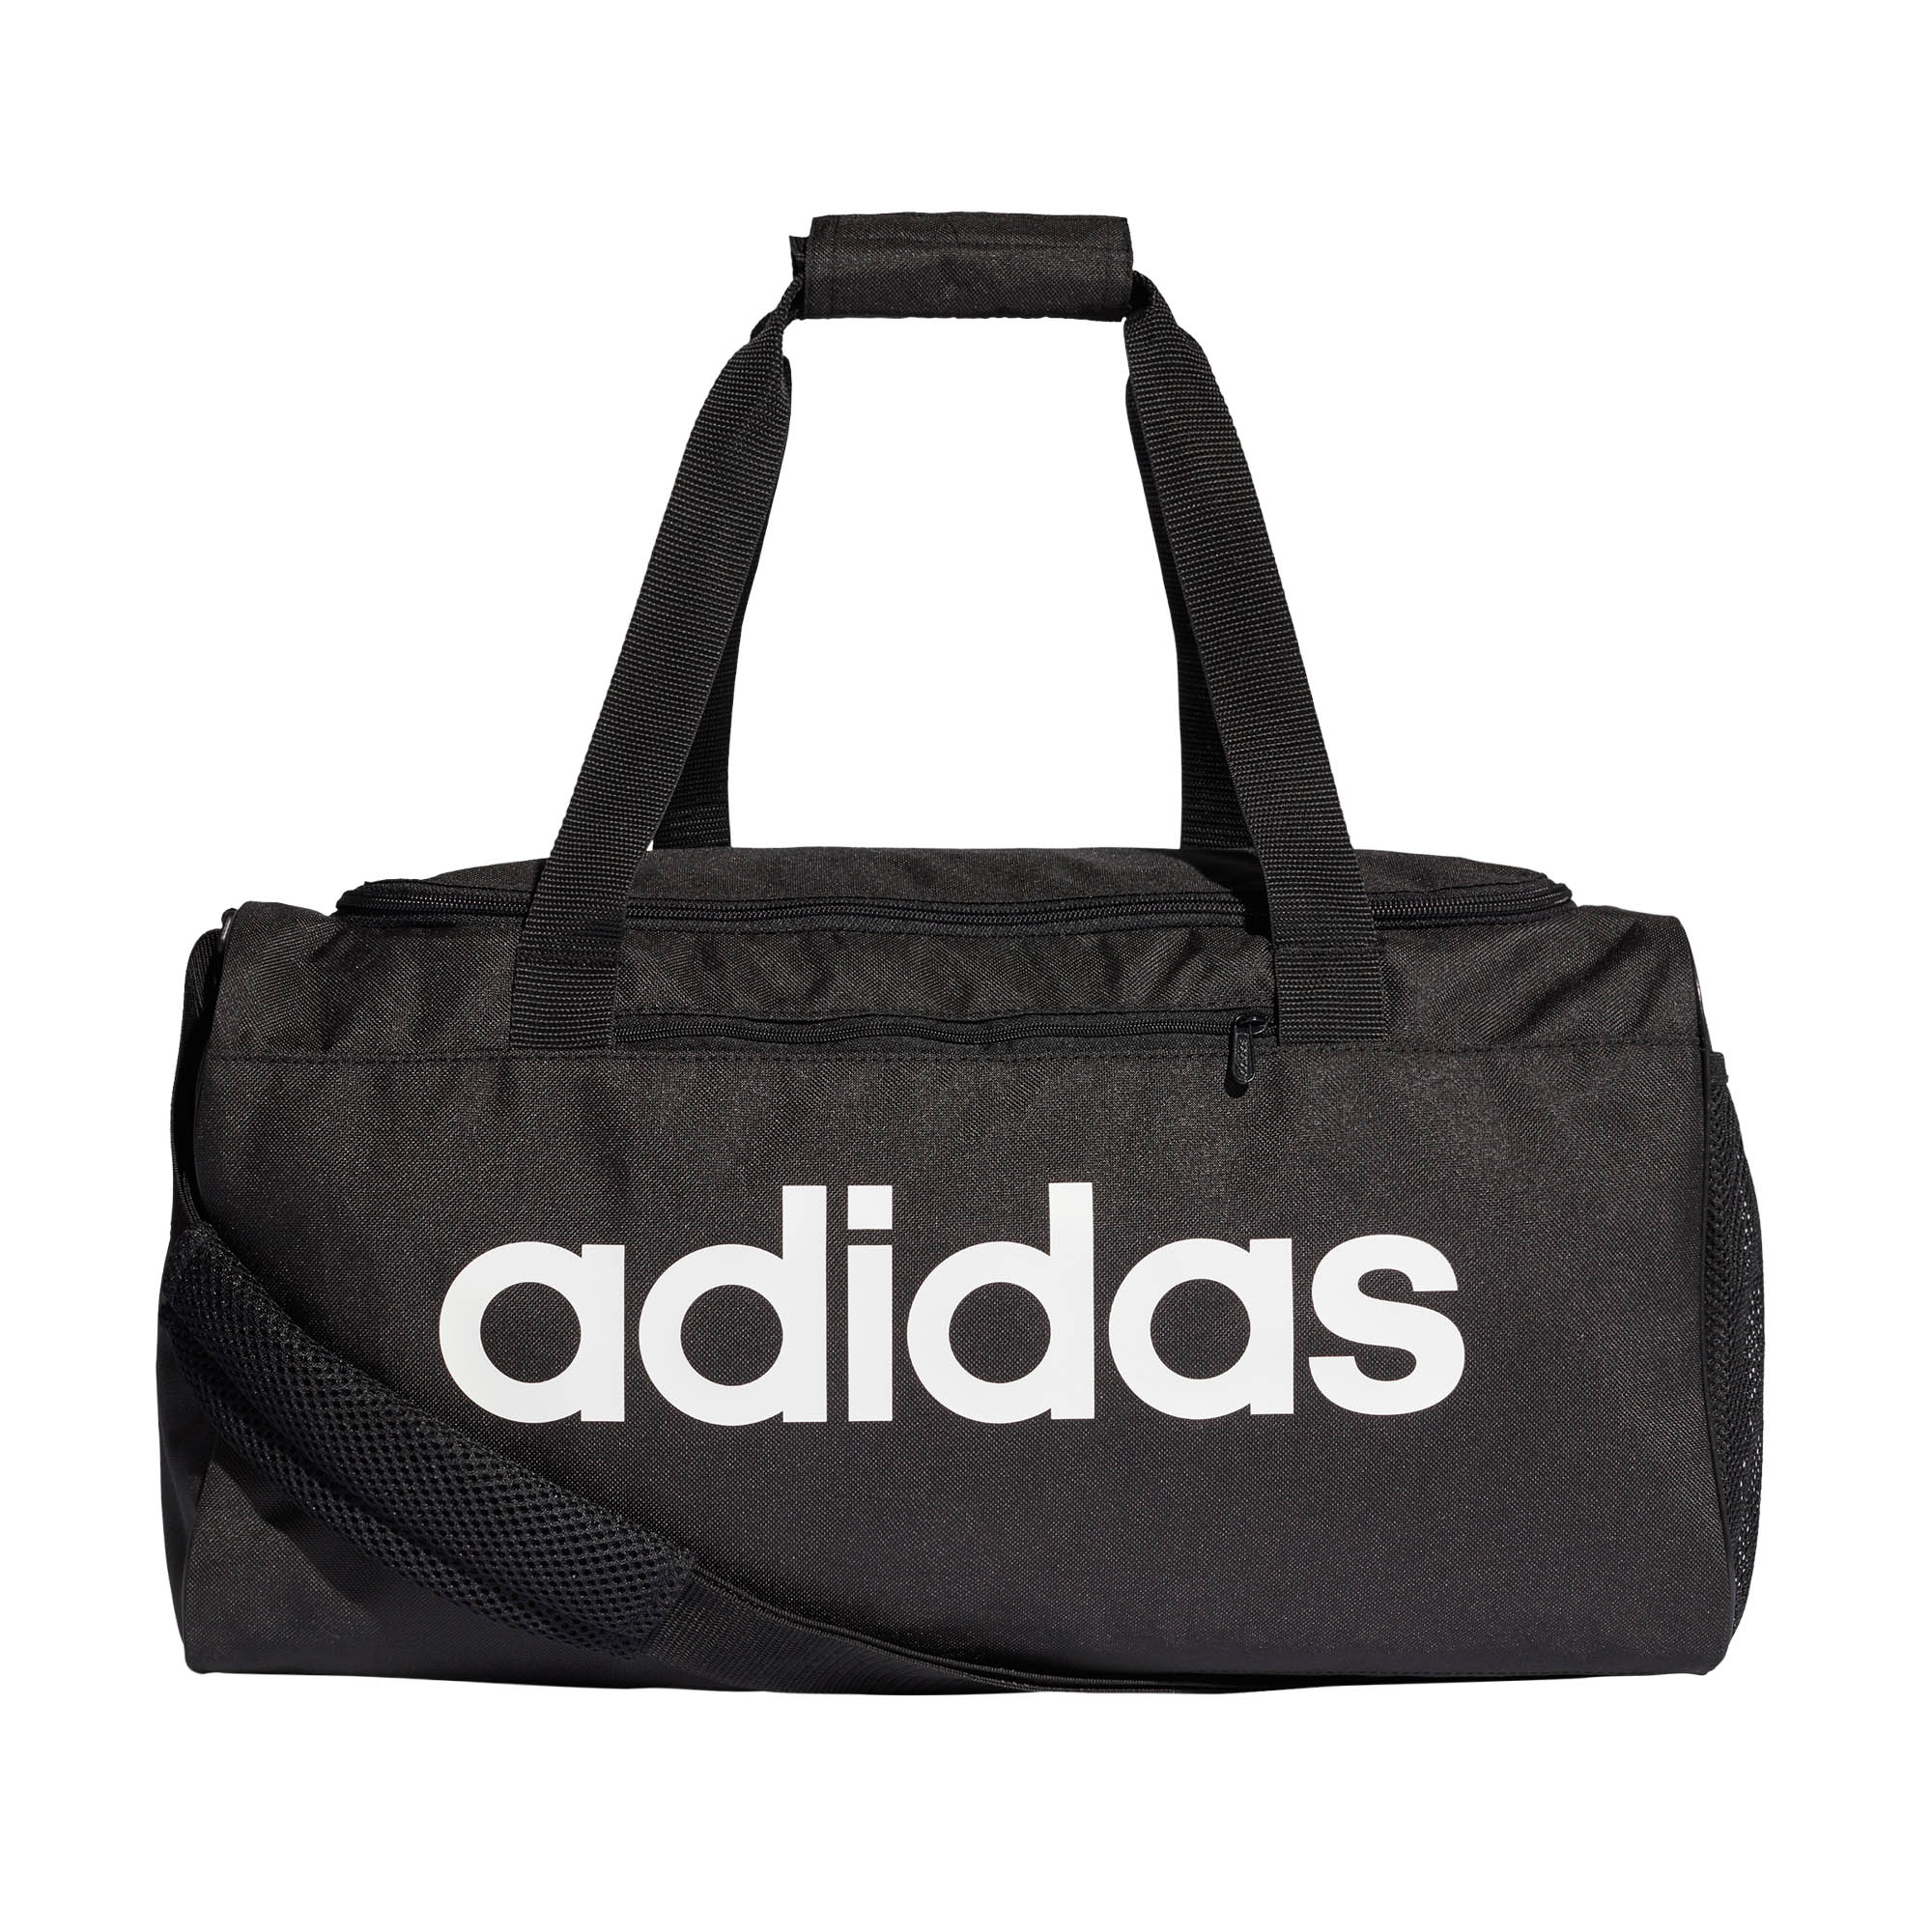 Details about adidas Linear Core Team Sports Gym Duffel Holdall Bag Small  Black White 44ae816184e0f